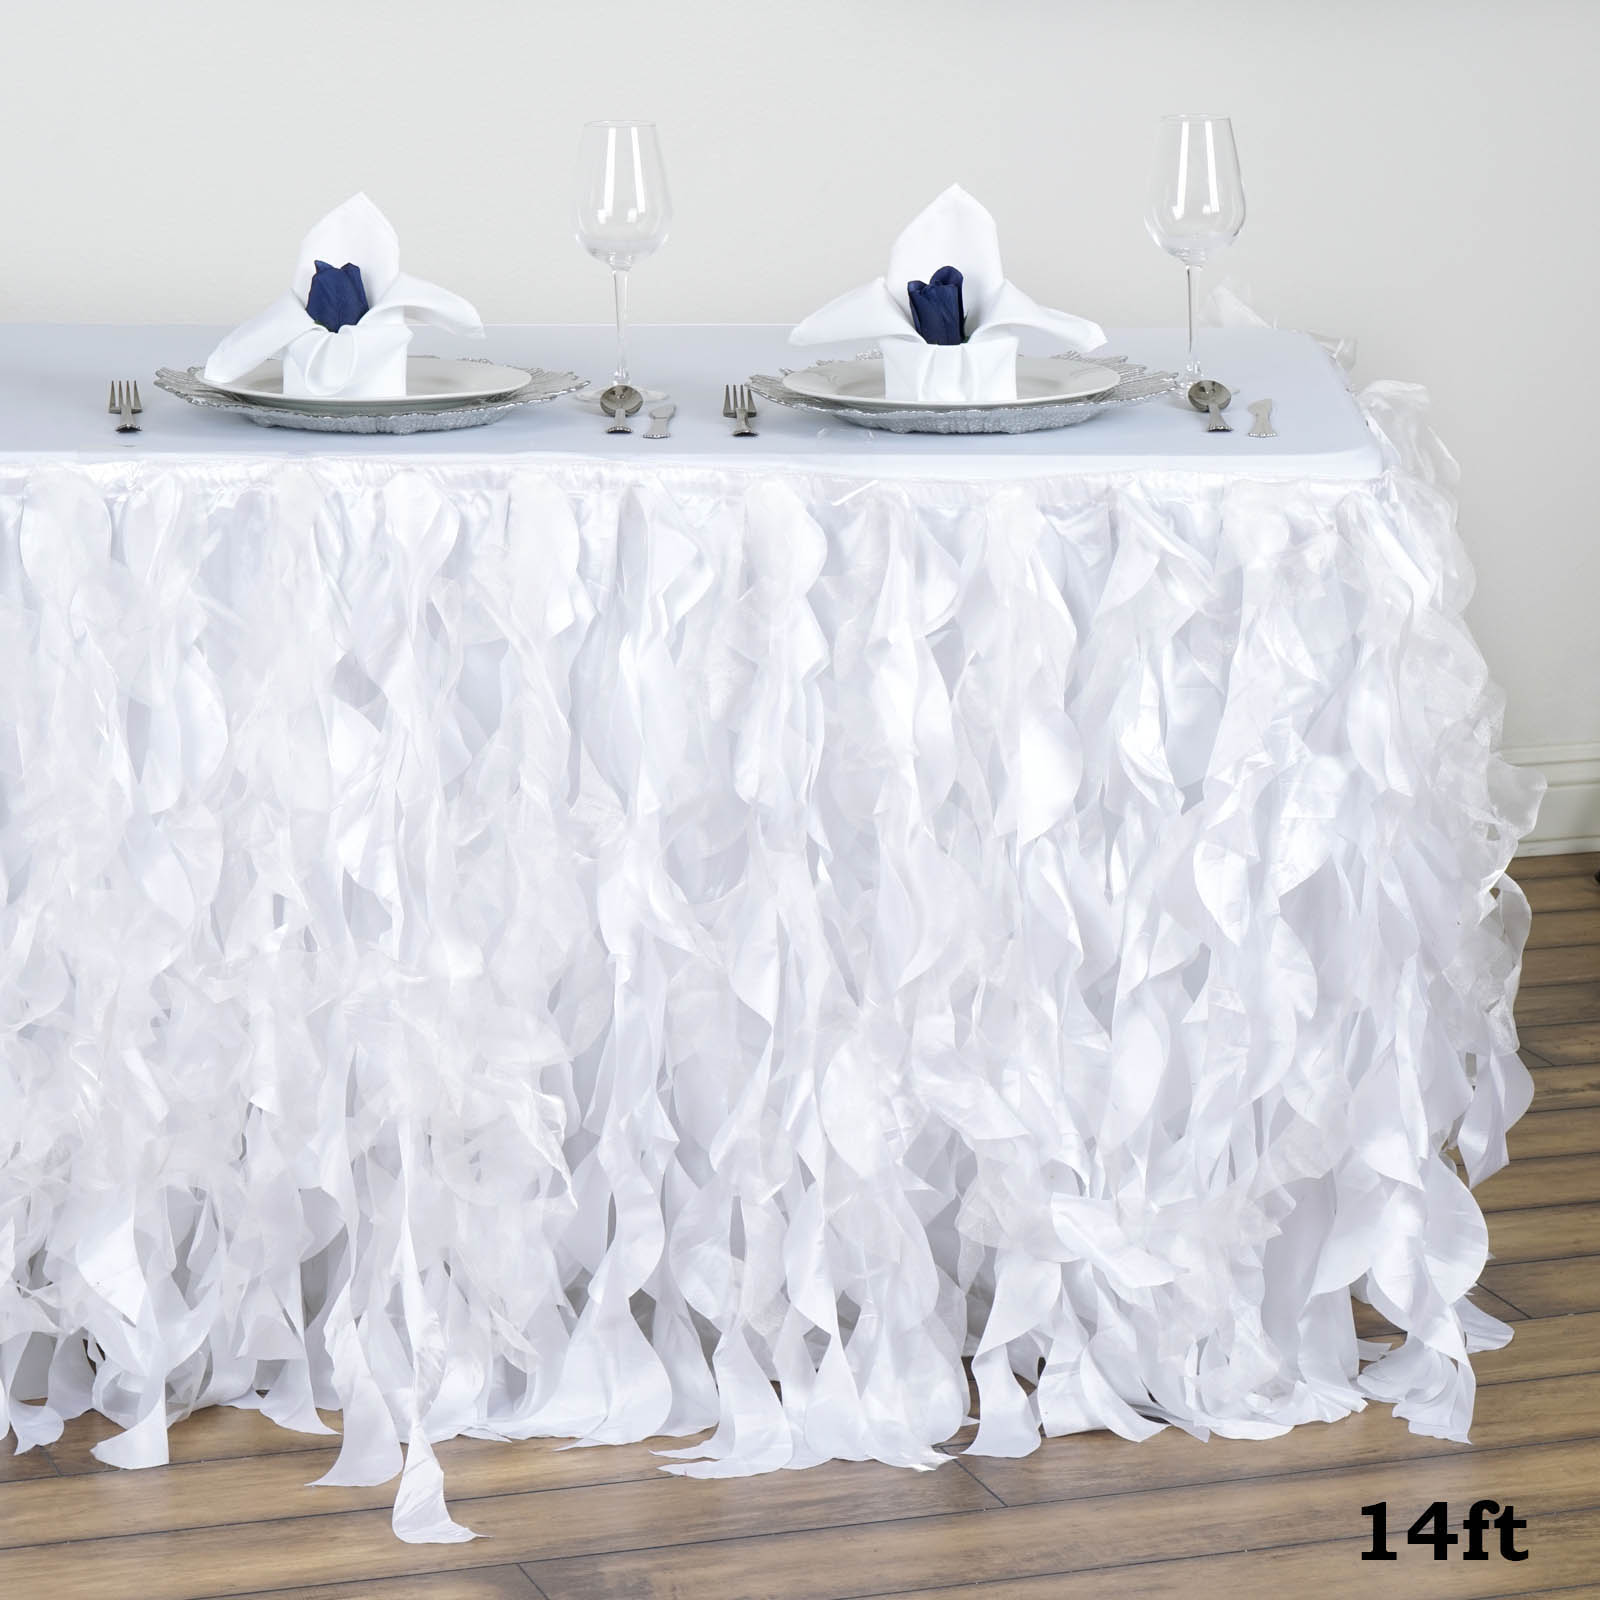 Enchanting Curly Willow Taffeta Table Skirt Wedding Decoration Table Covers